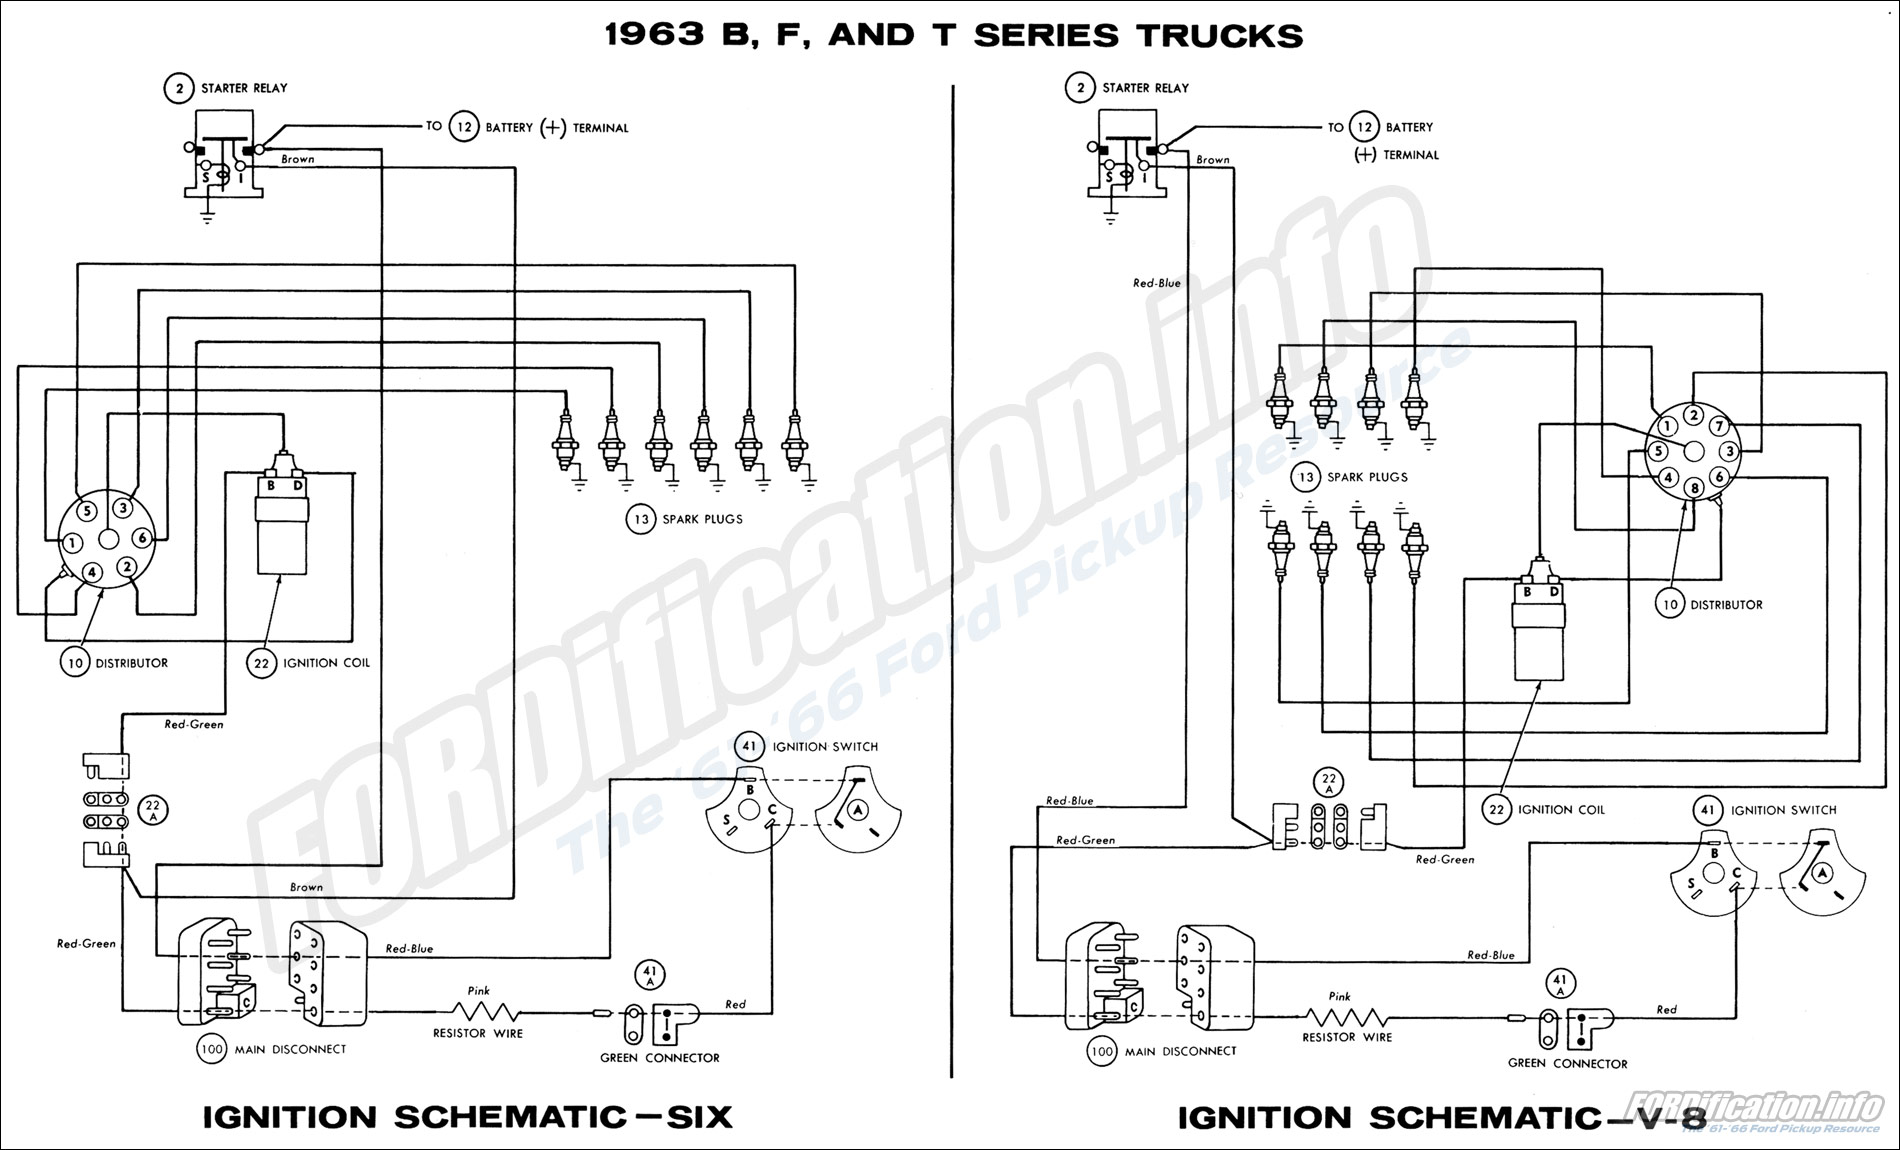 1968 Ford F 250 Truck Dist Wiring Diagram Trusted Diagrams 76 Ltd Ignition 1963 Distributor Library Of U2022 1976